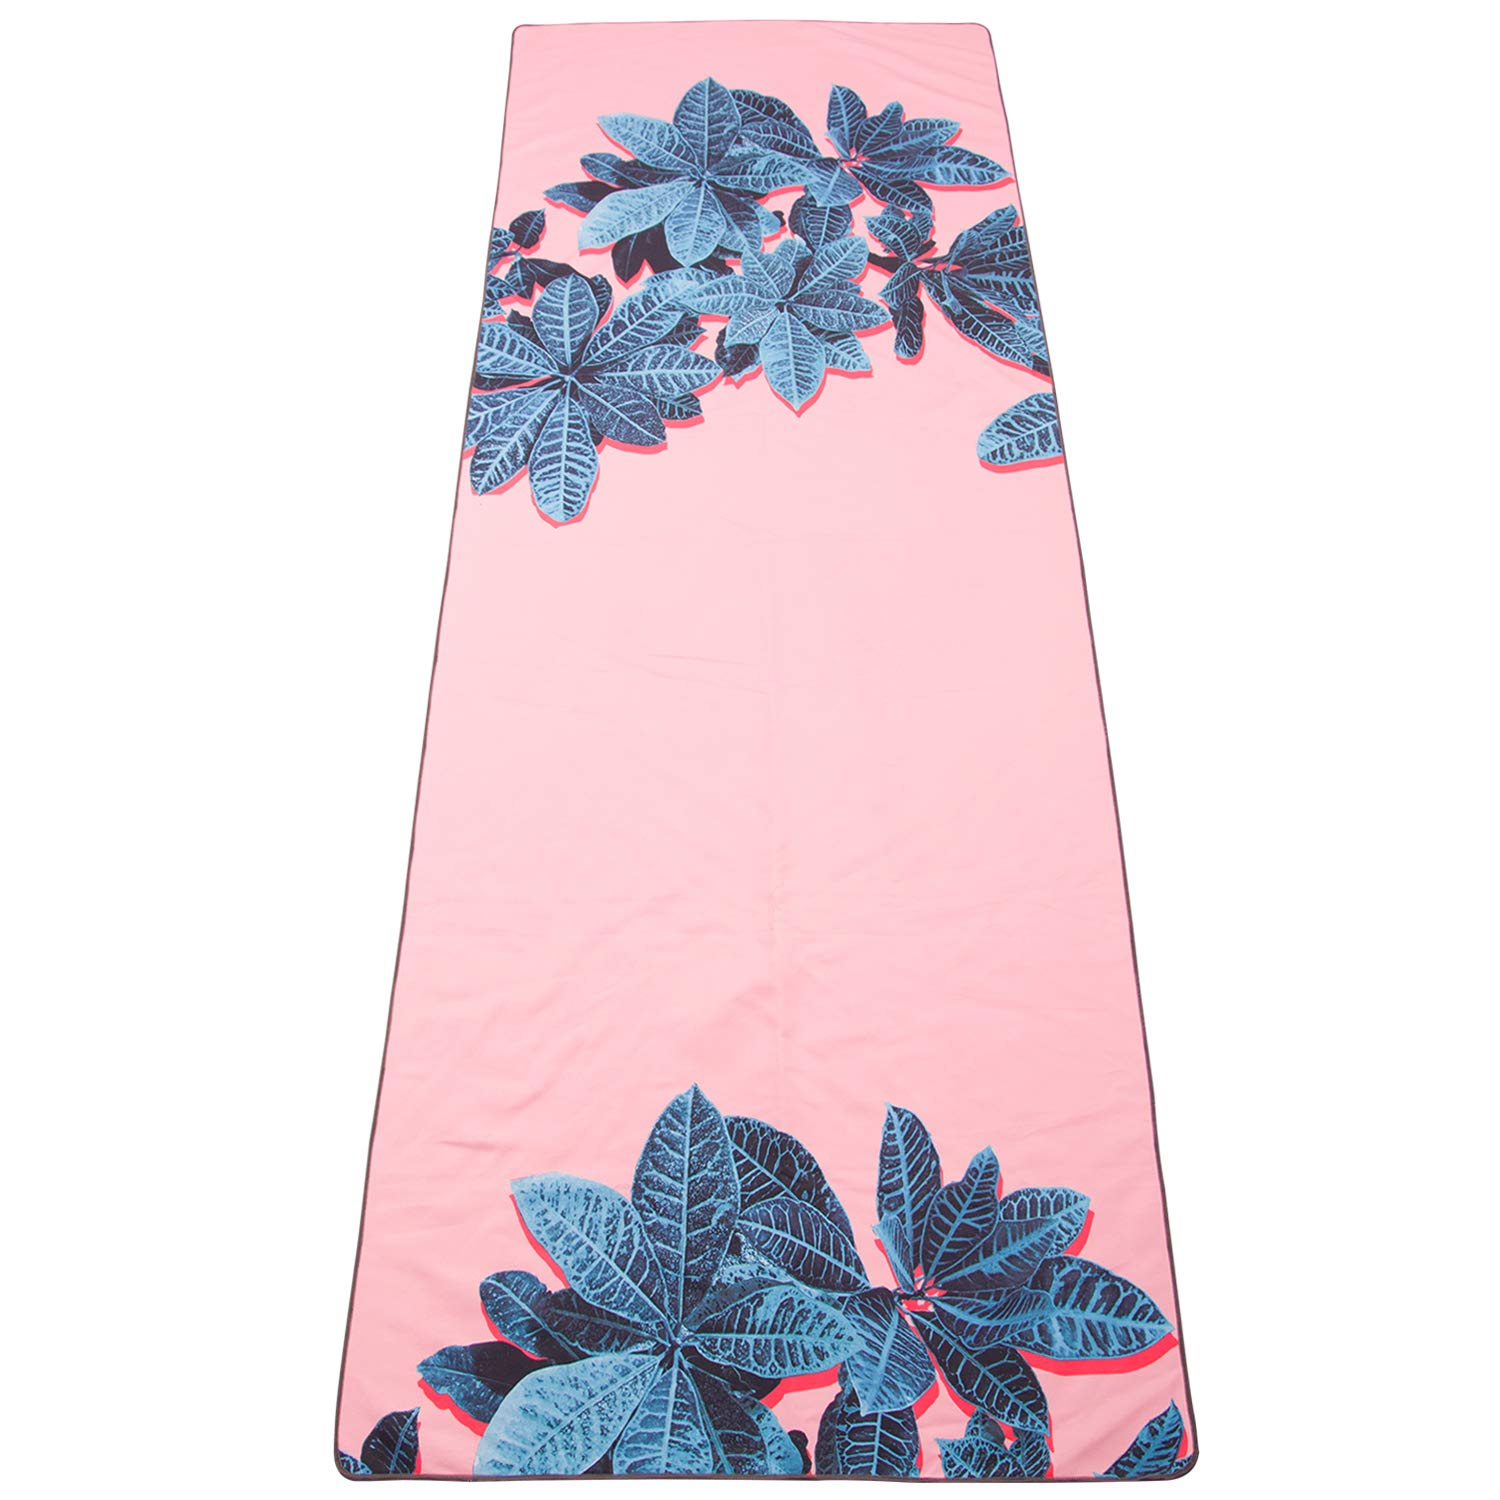 Amazon.com : Dimaka Yoga Towerl for Hot Yoga with Grip ...